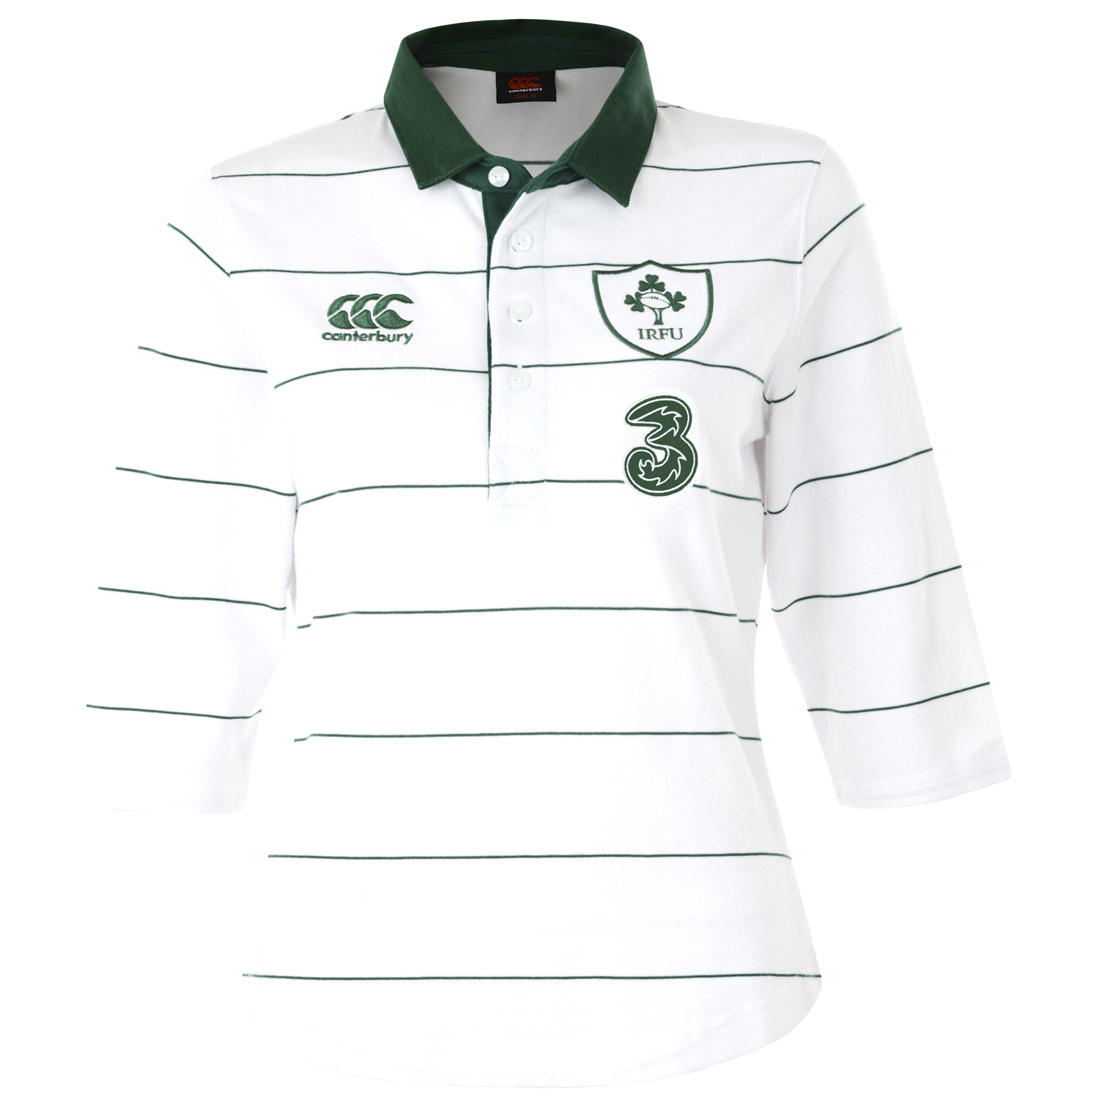 Ireland Alternate Classic 3/4 Sleeve Rugby Shirt 2014/15 - Womens White